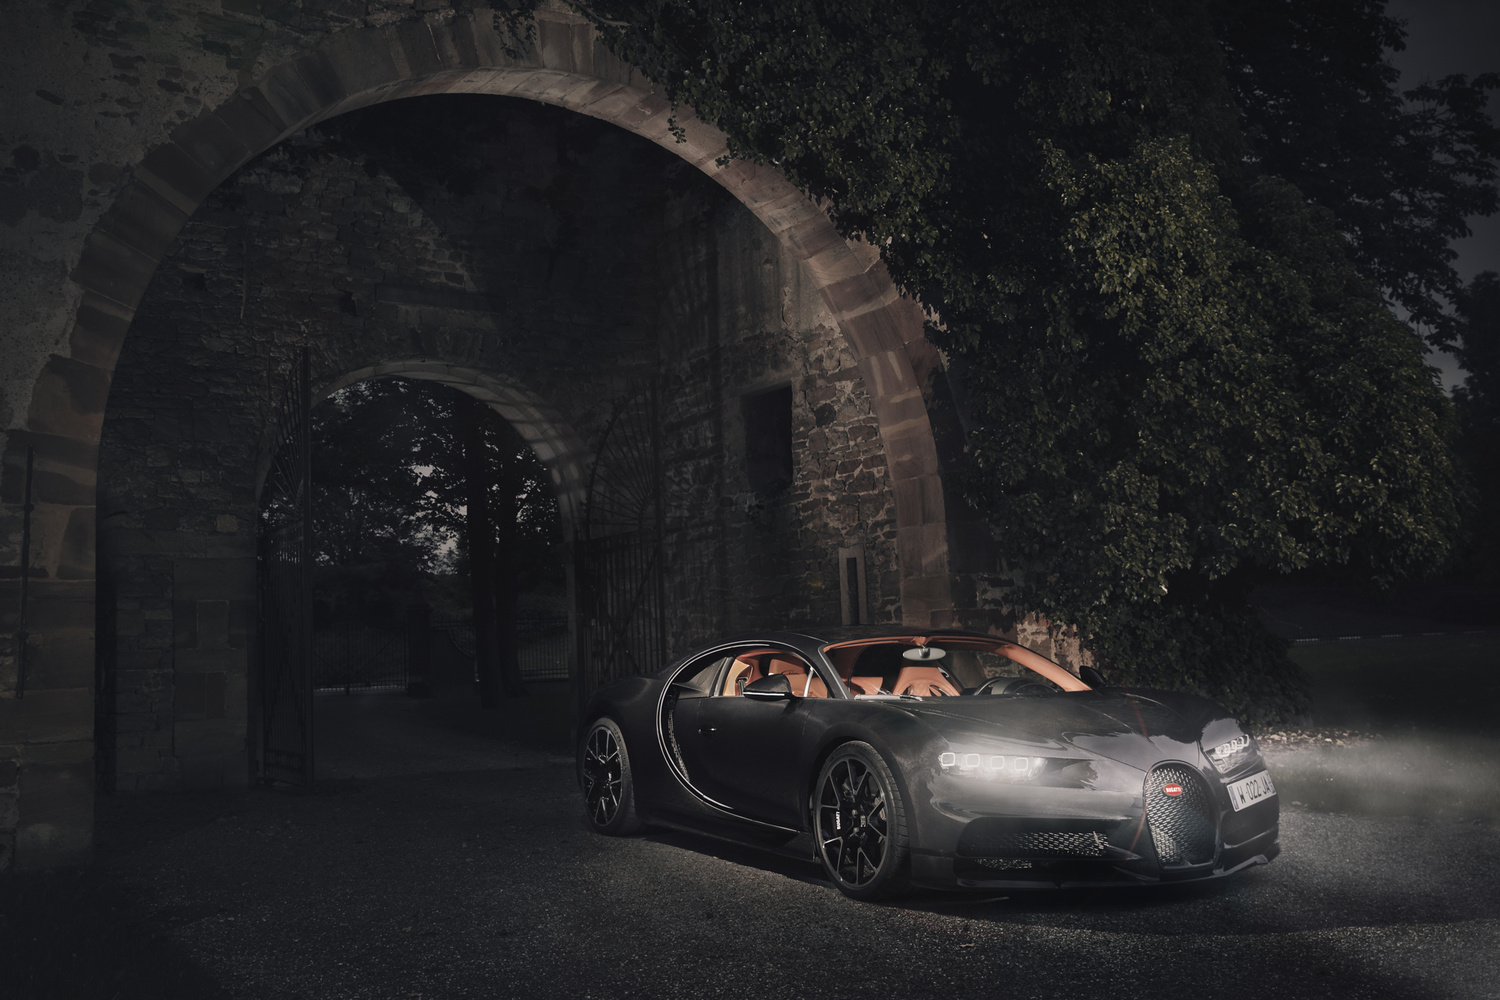 Bugatti Chiron by night by Andrew Hoyle